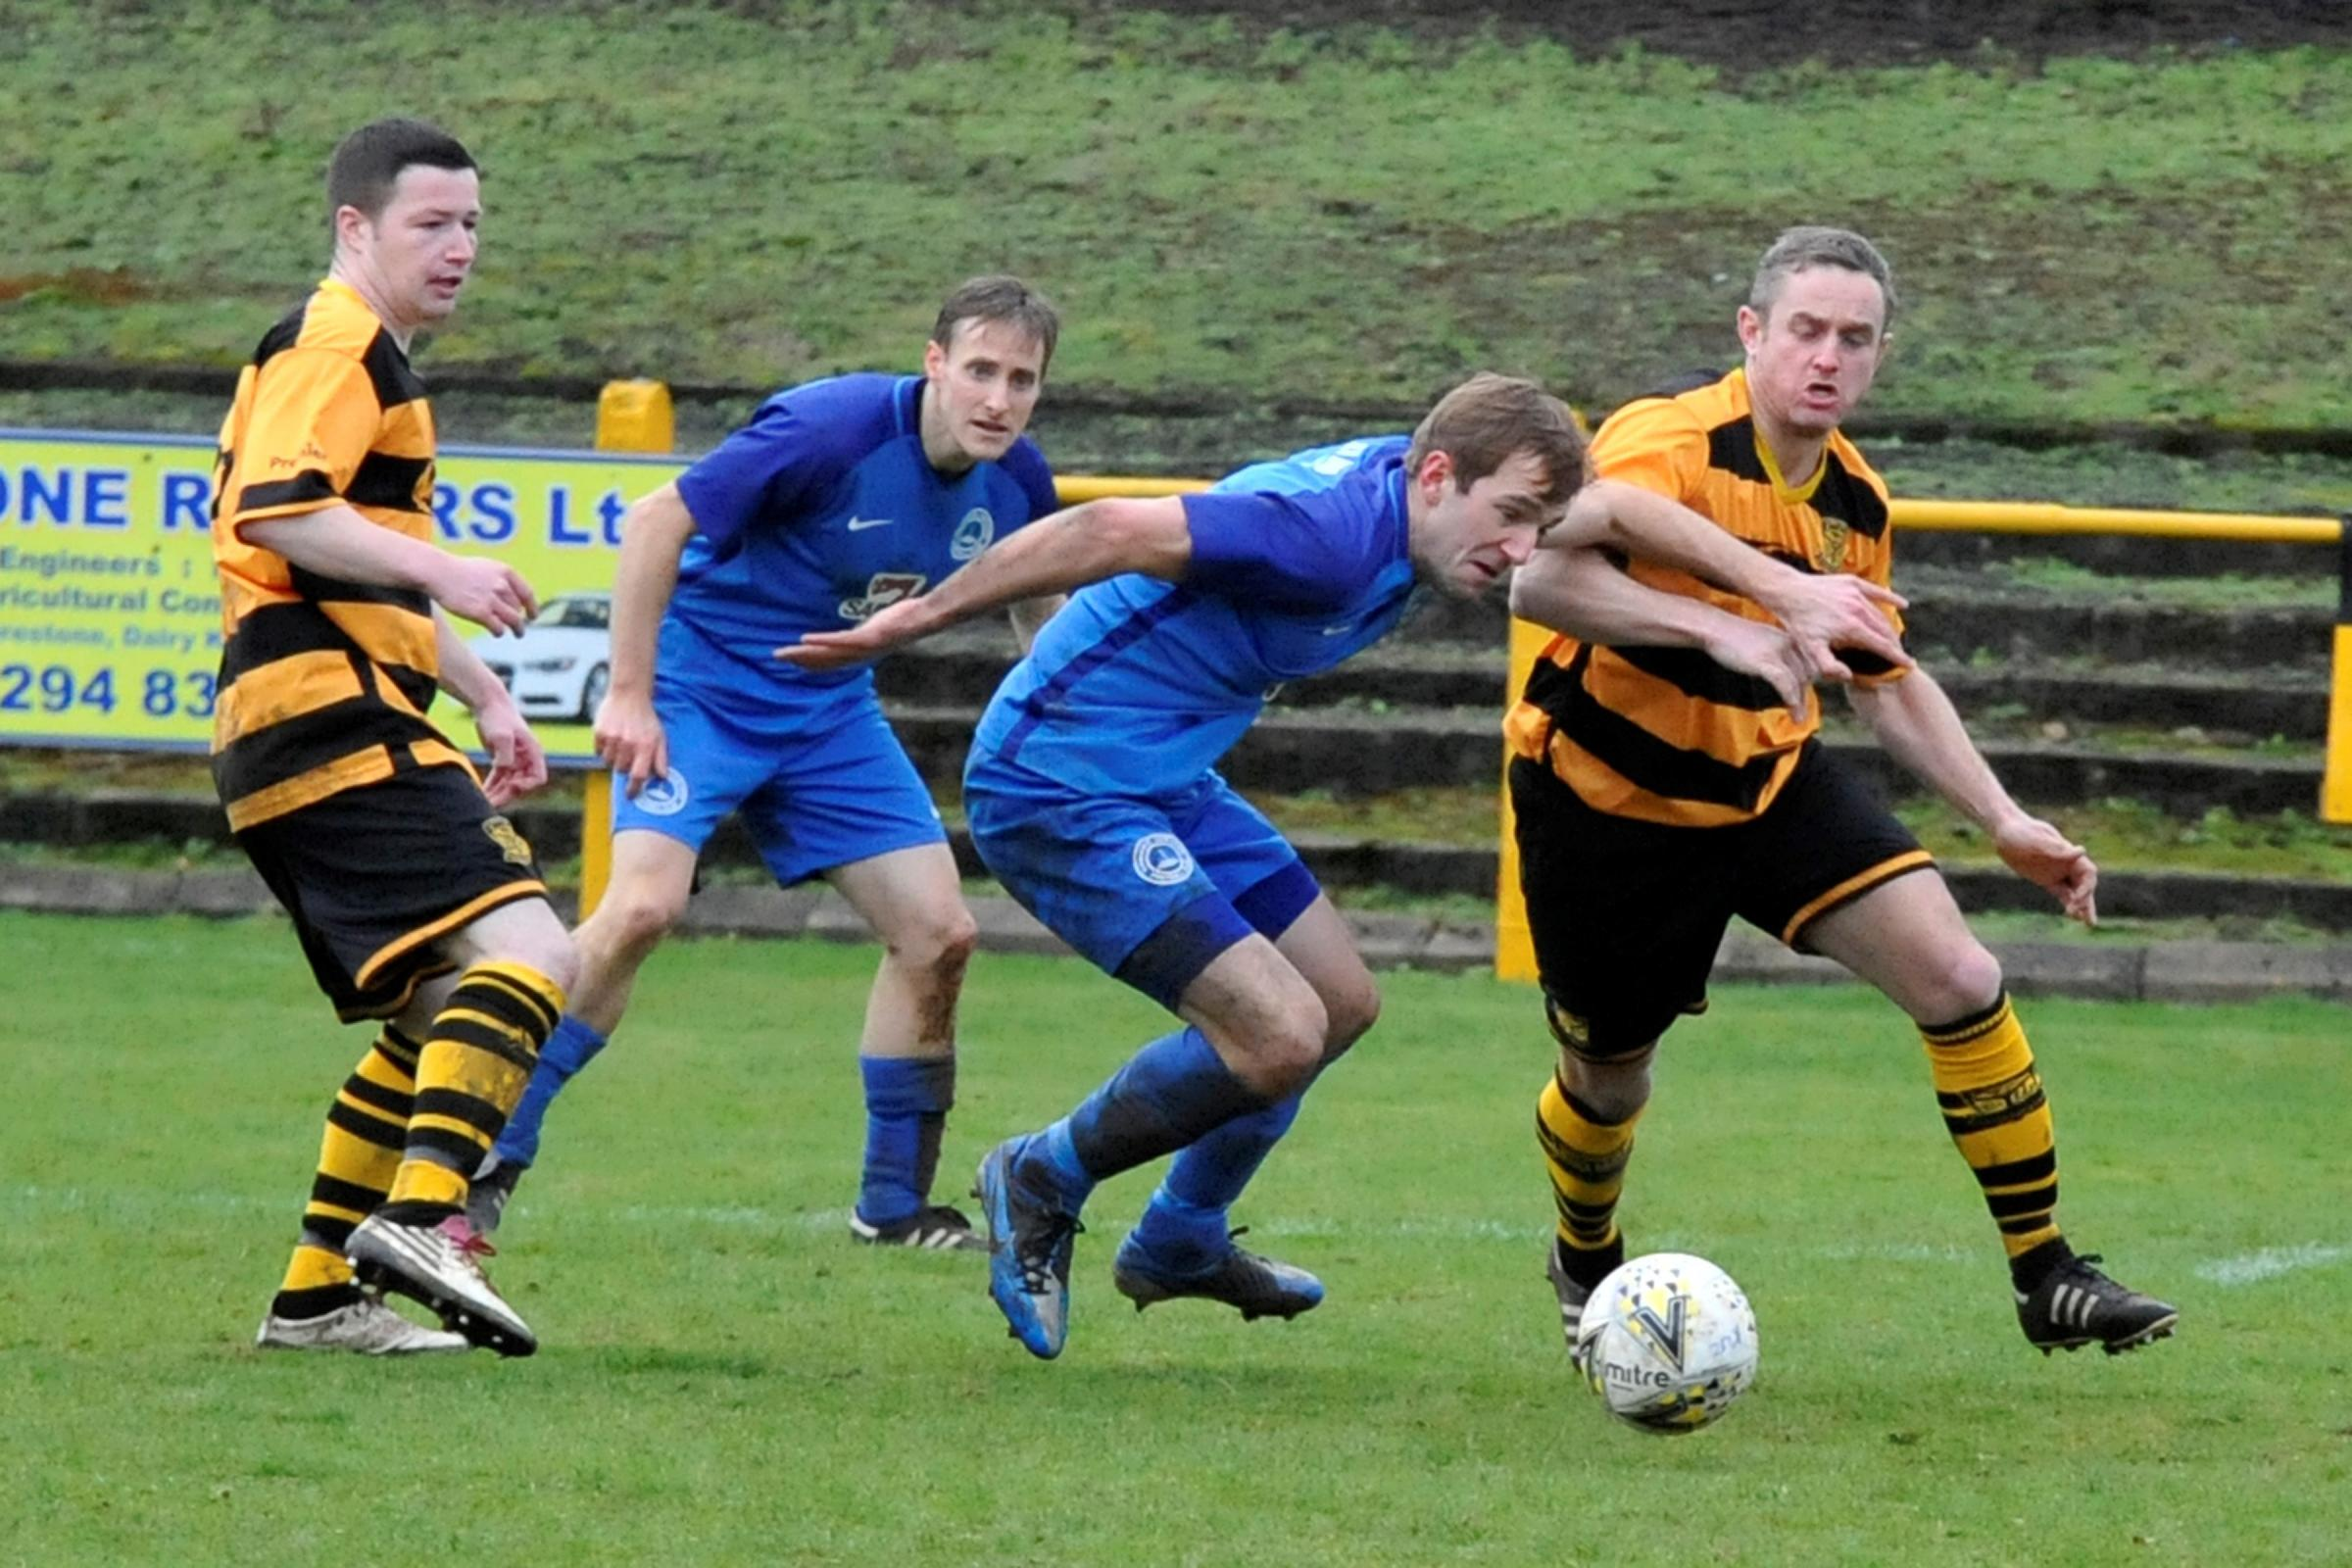 BATTLING HARD: Ladeside boss Liam McGuinness is pictured (right) in action against Cumnock.